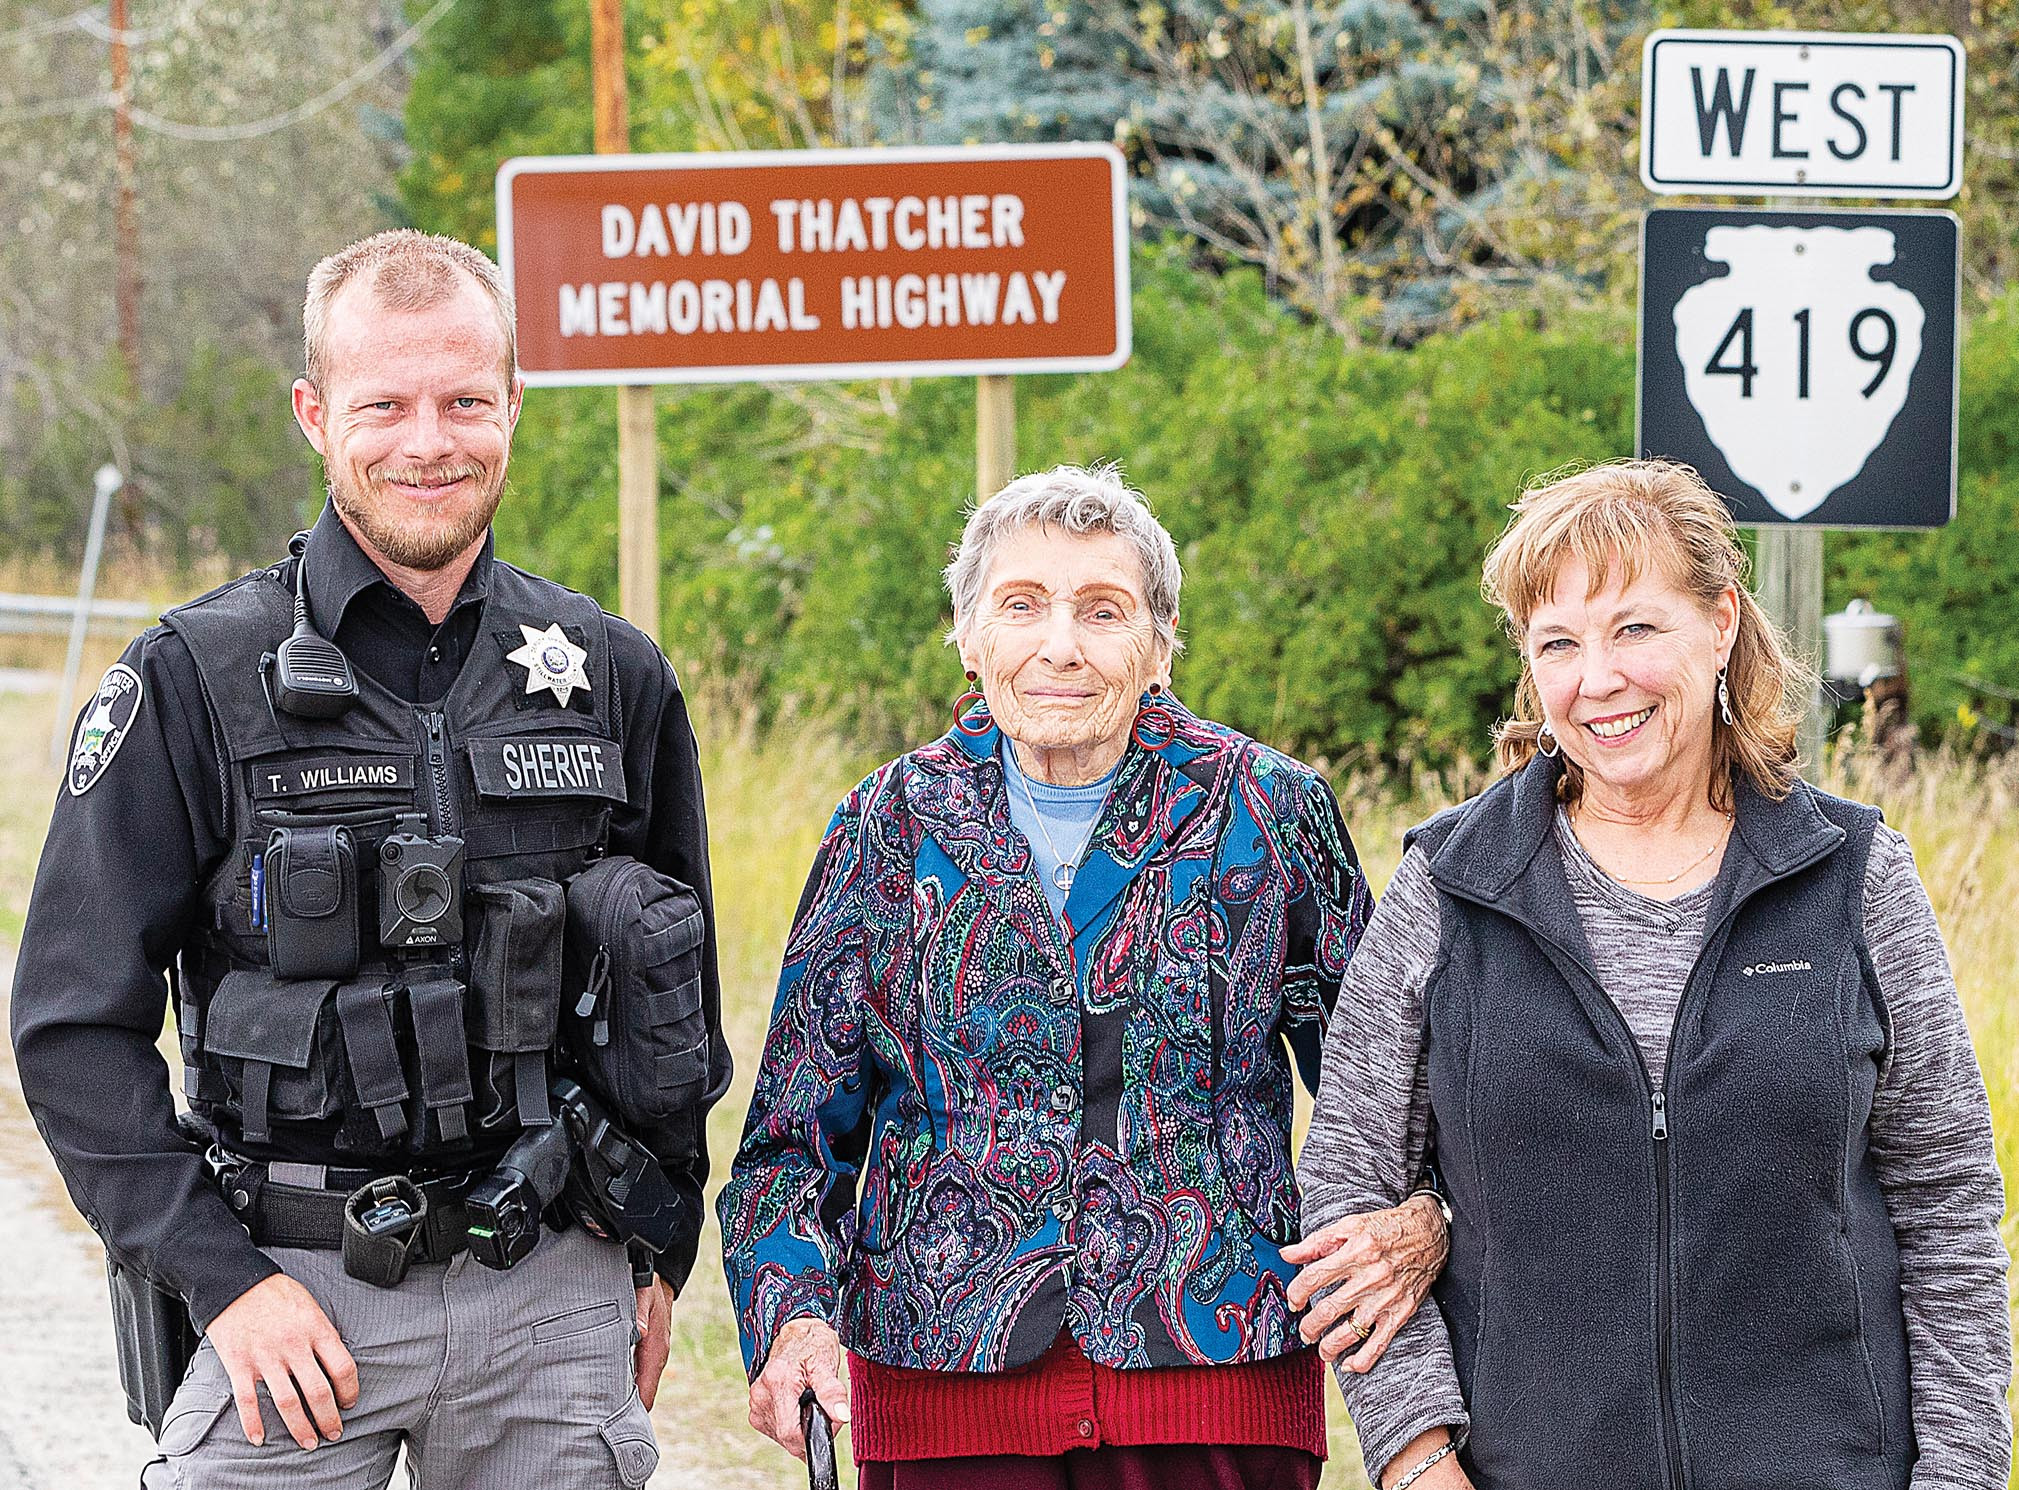 Photo by Maurice CravensStillwater County Sheriff's Deputy Ty Williams poses with Thatcher's wife and daughter — Dawn Thatcher and Sandy Miller —  in front of the new highway sign.